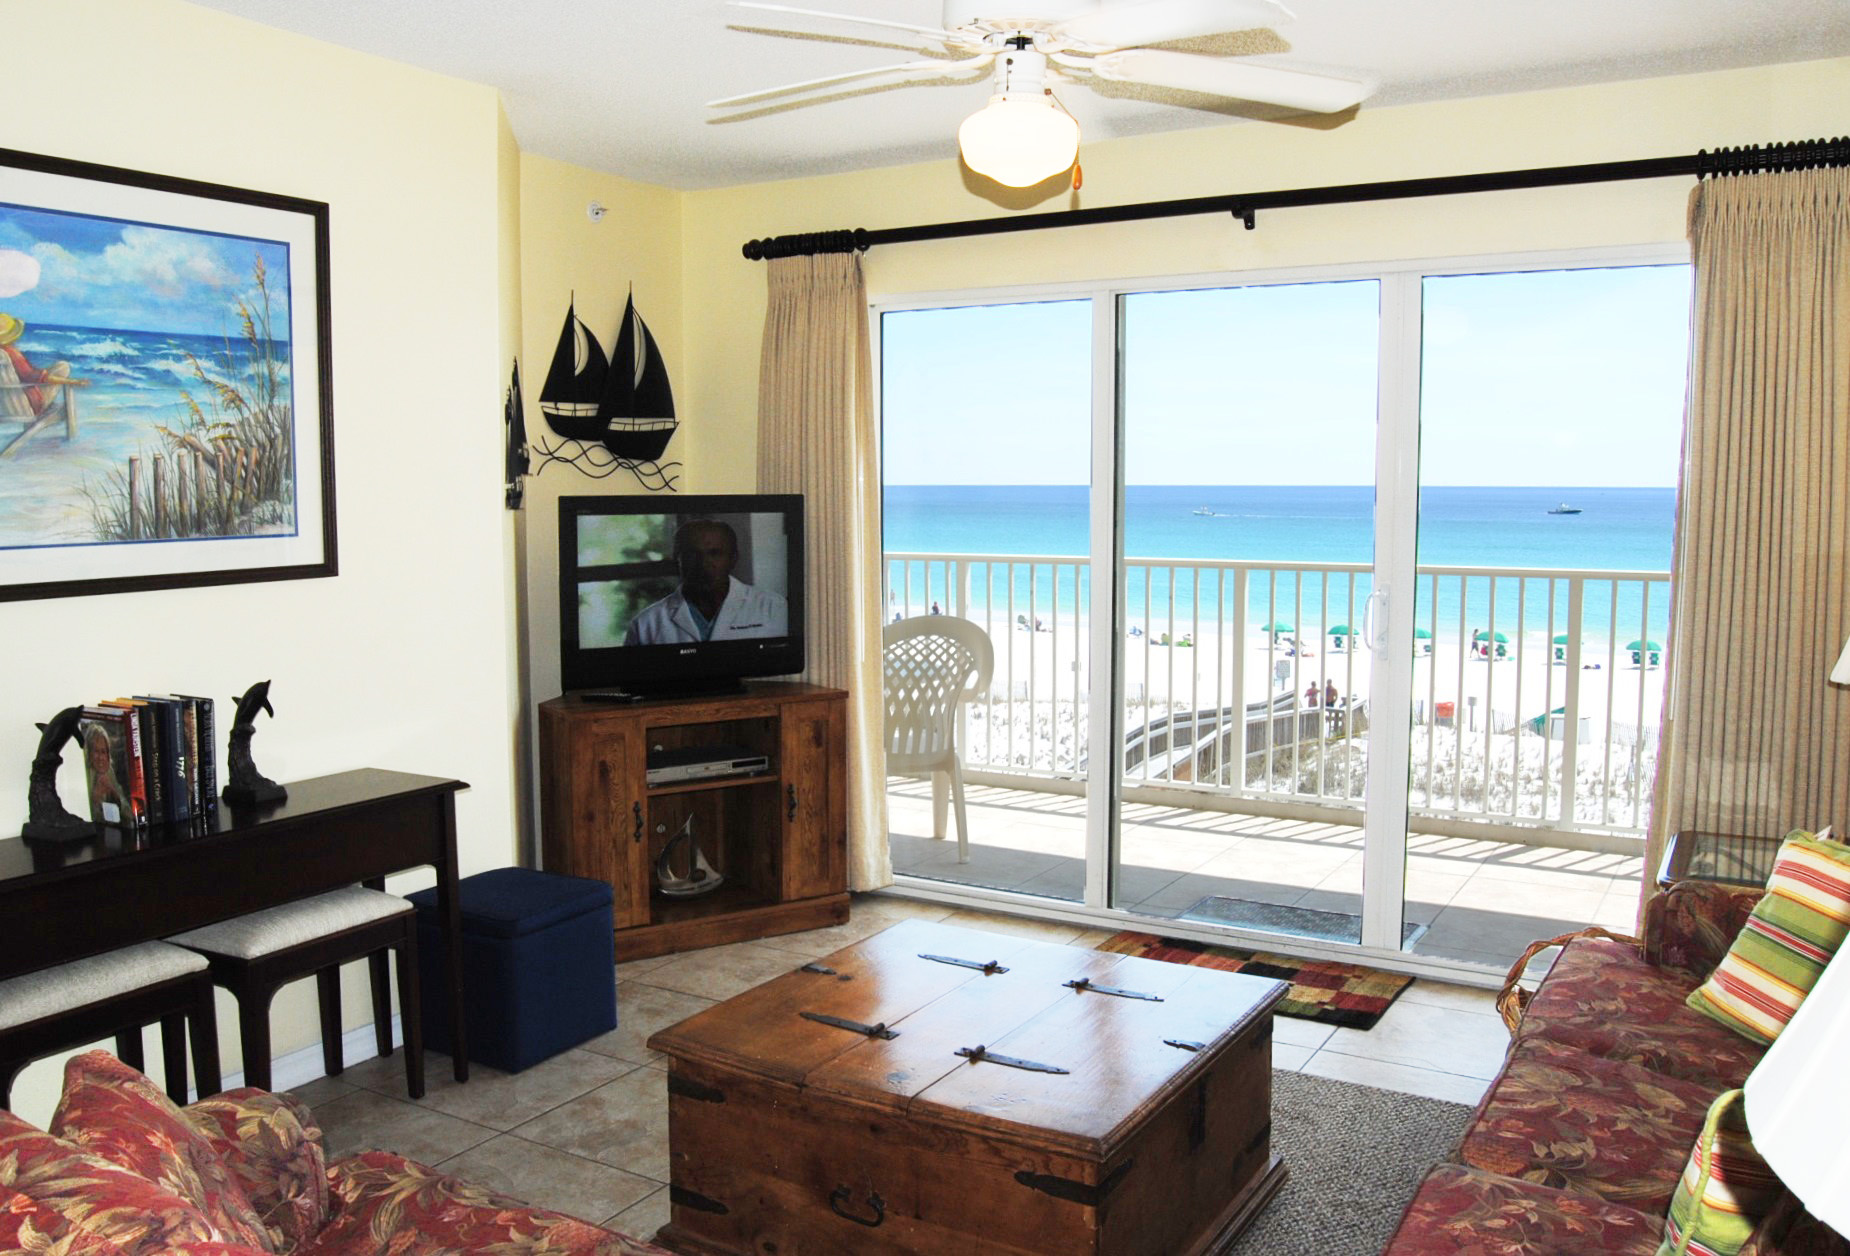 Living Room with Ocean View -  Gulf Dunes 304 Fort Walton Beach Florida Okaloosa Island Vacation Rentals